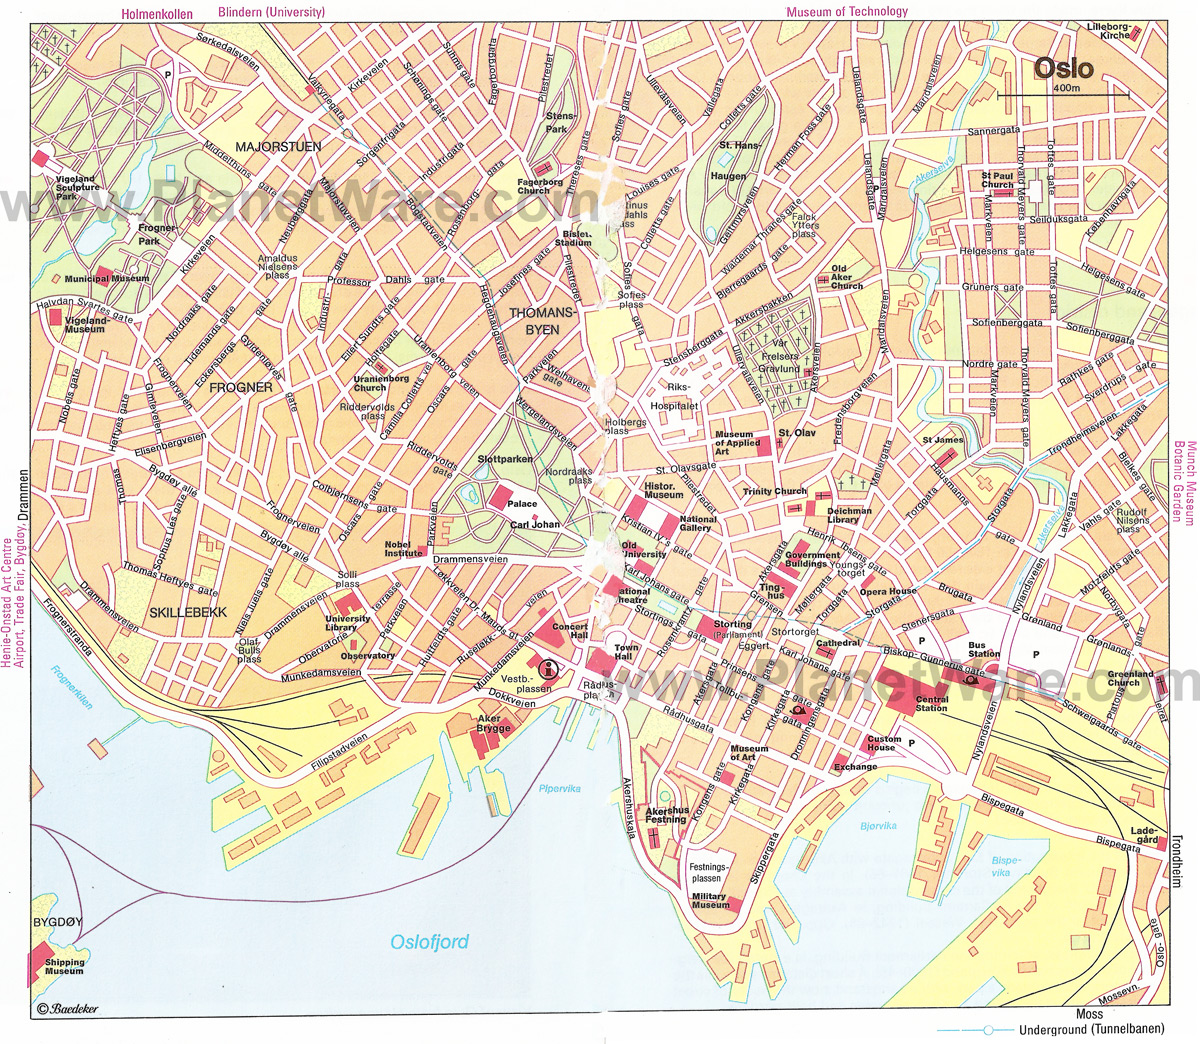 Oslo Norway Map Oslo Map   Detailed City and Metro Maps of Oslo for Download  Oslo Norway Map